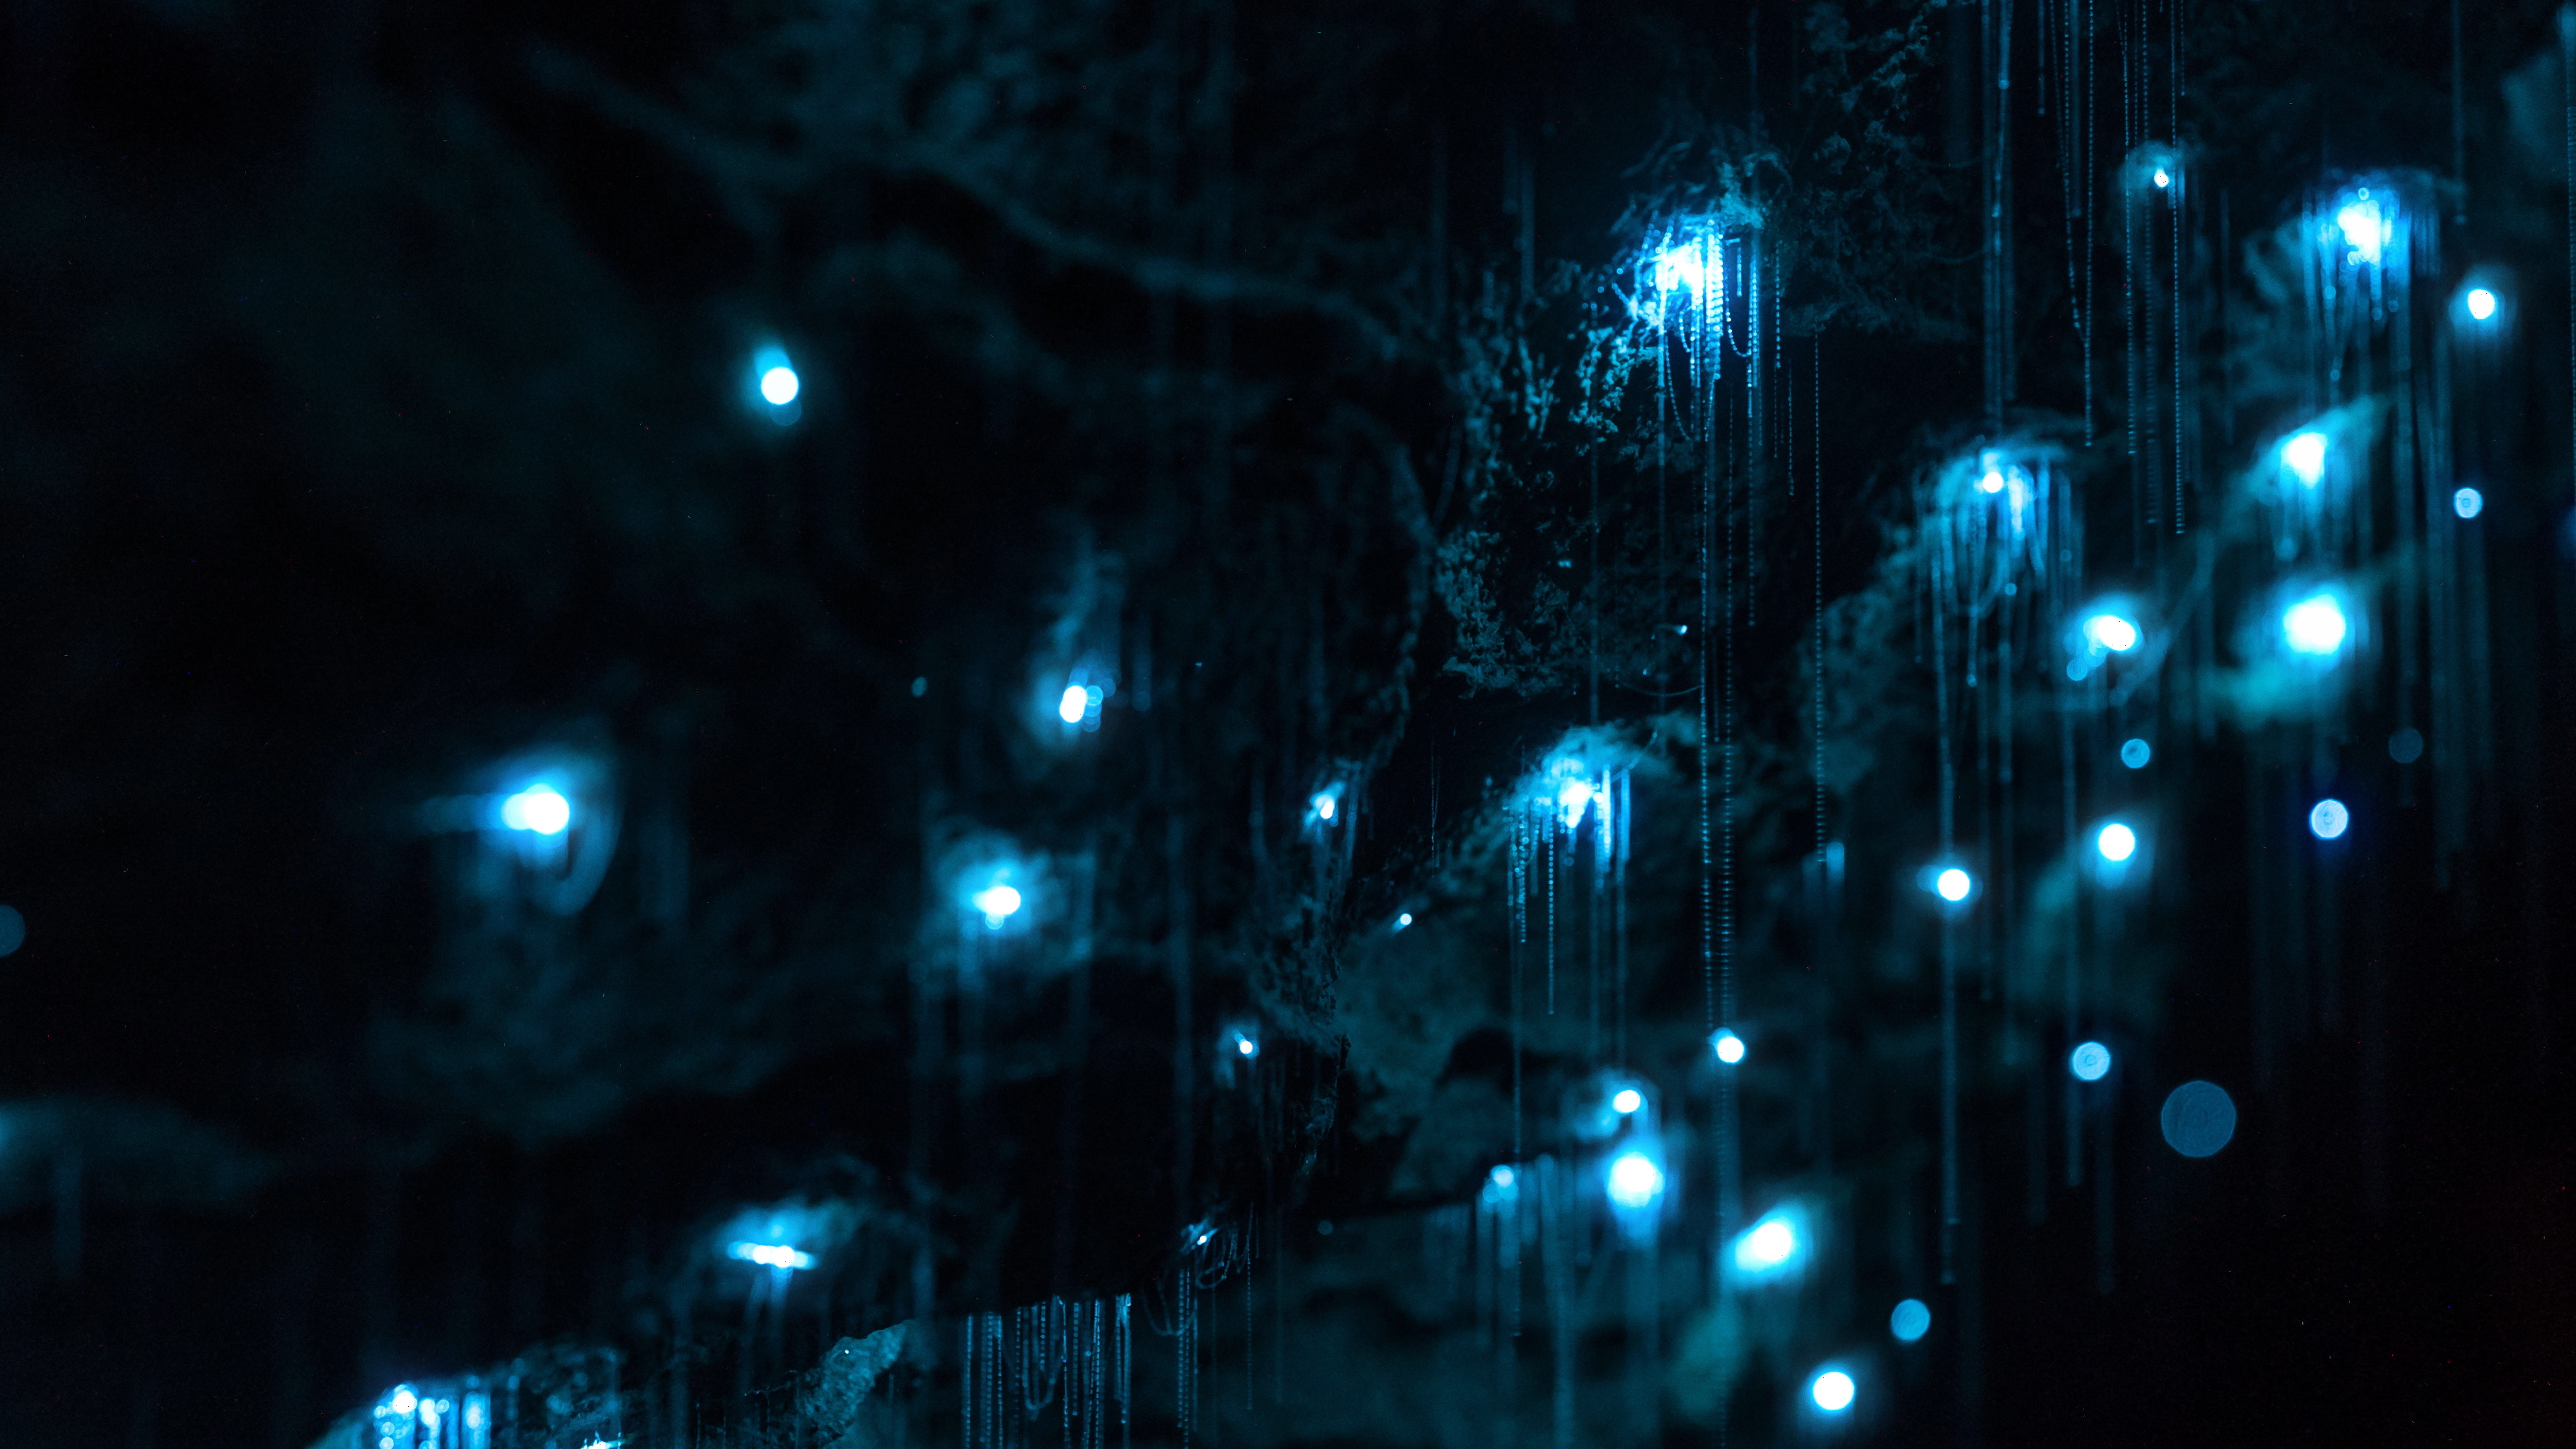 Glow worm cave HD Wallpapers